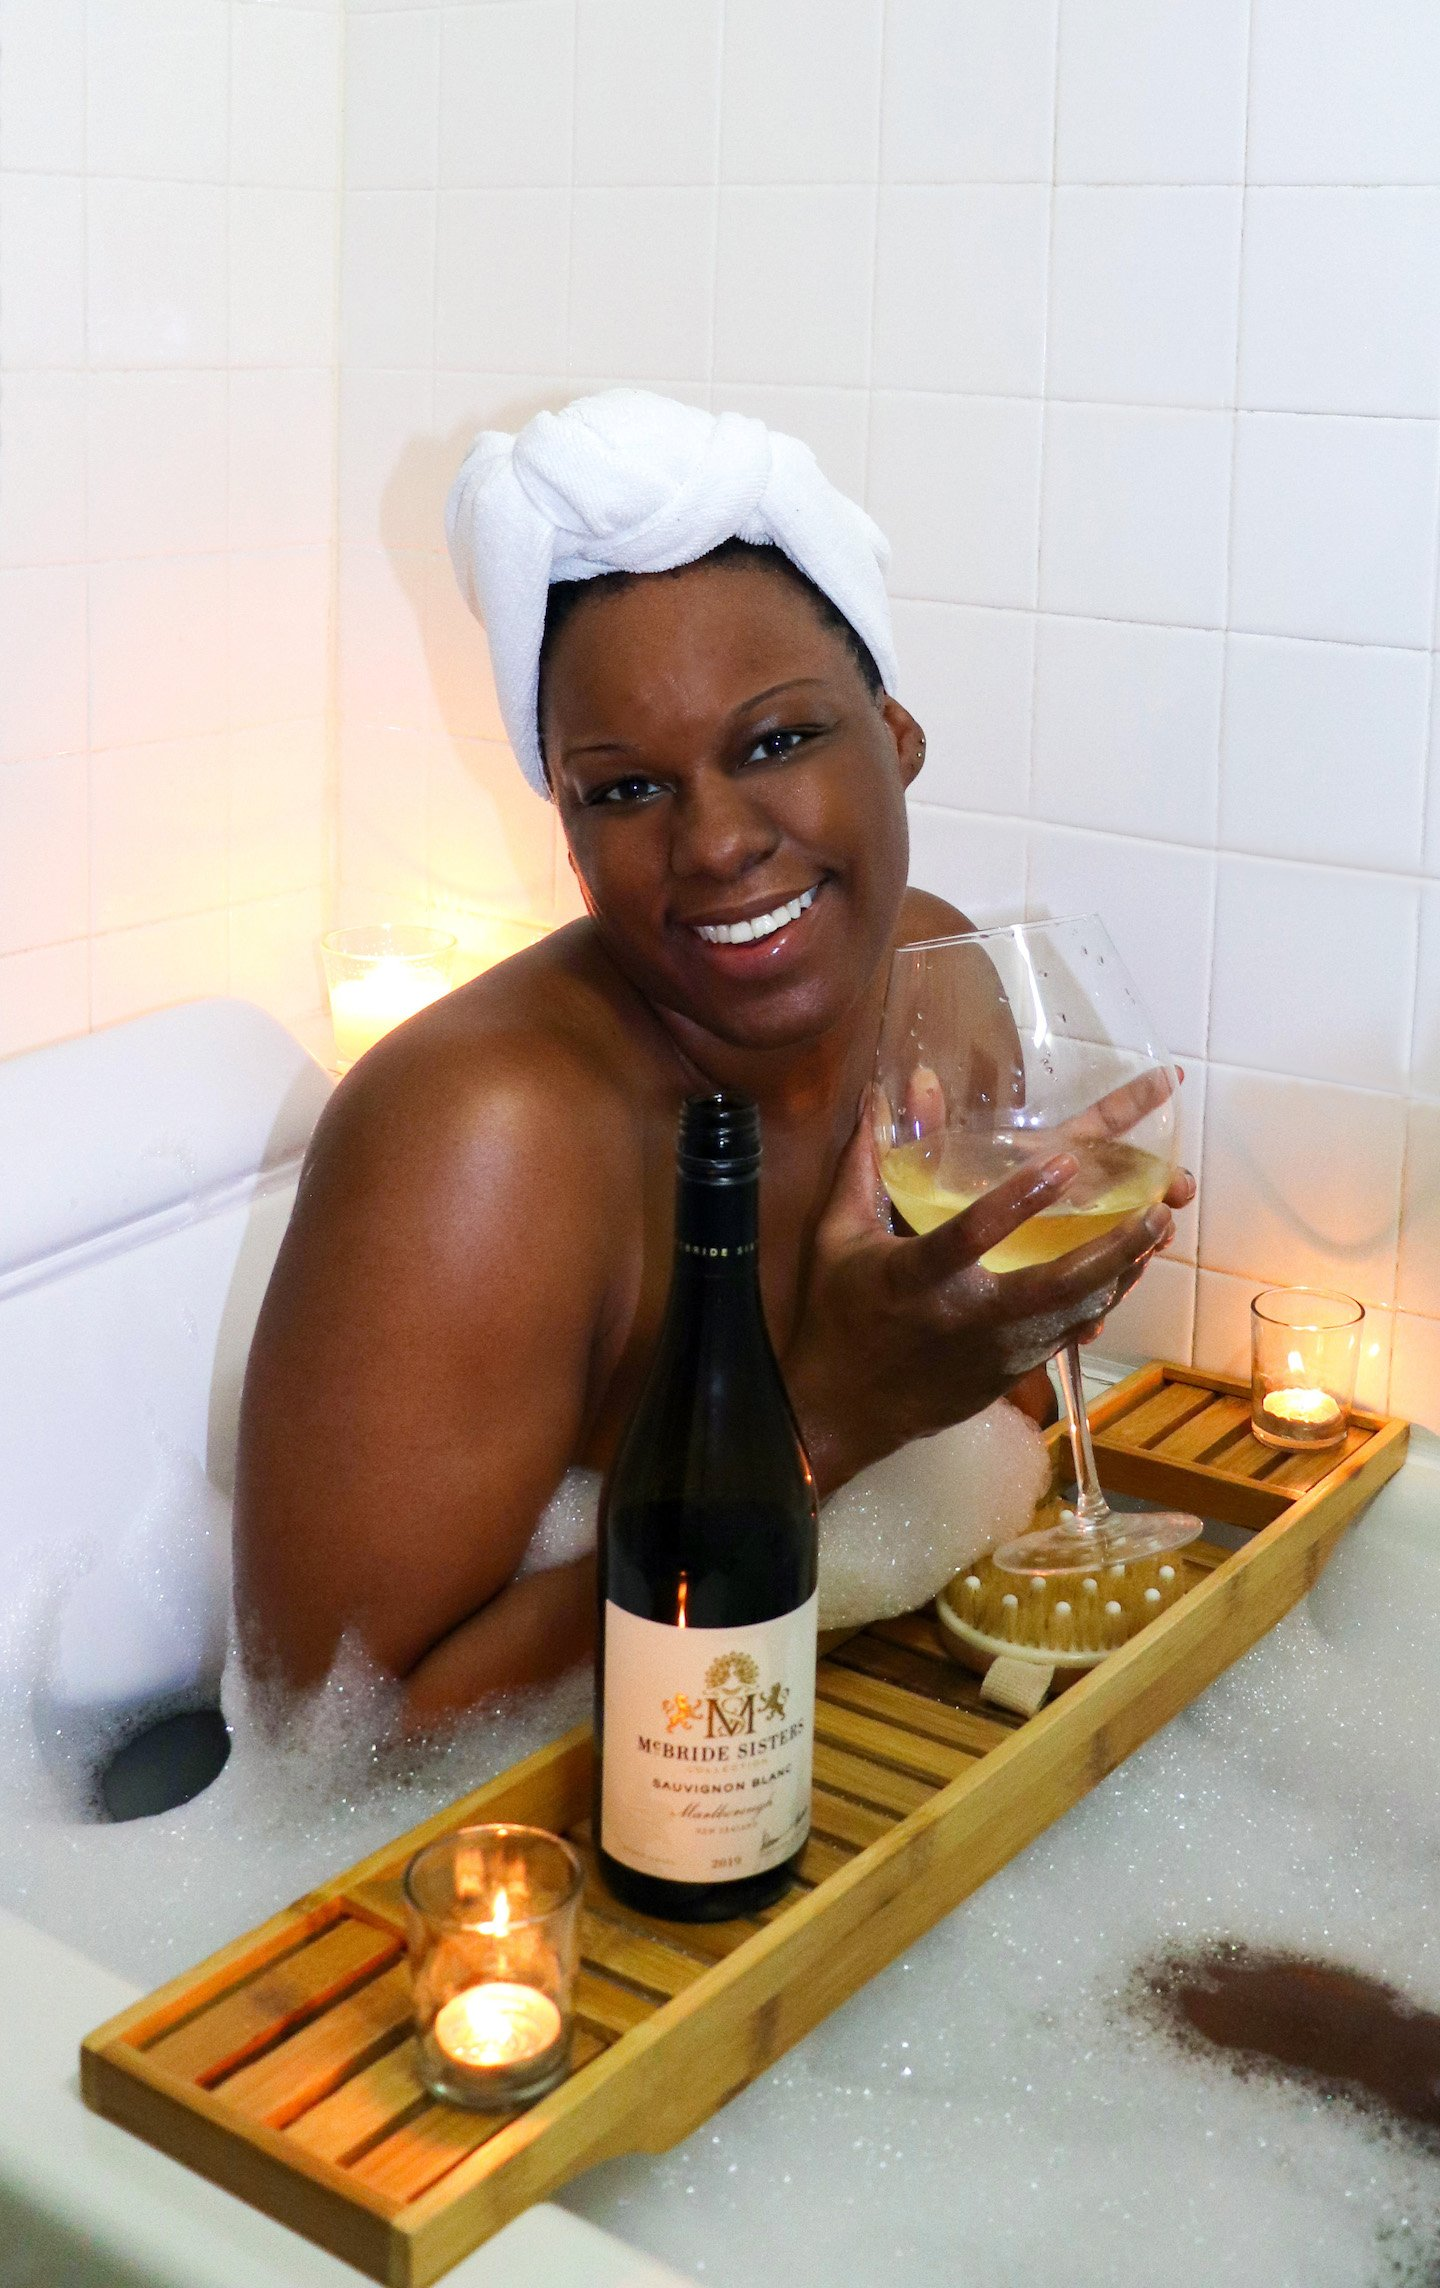 At Home Spa Day